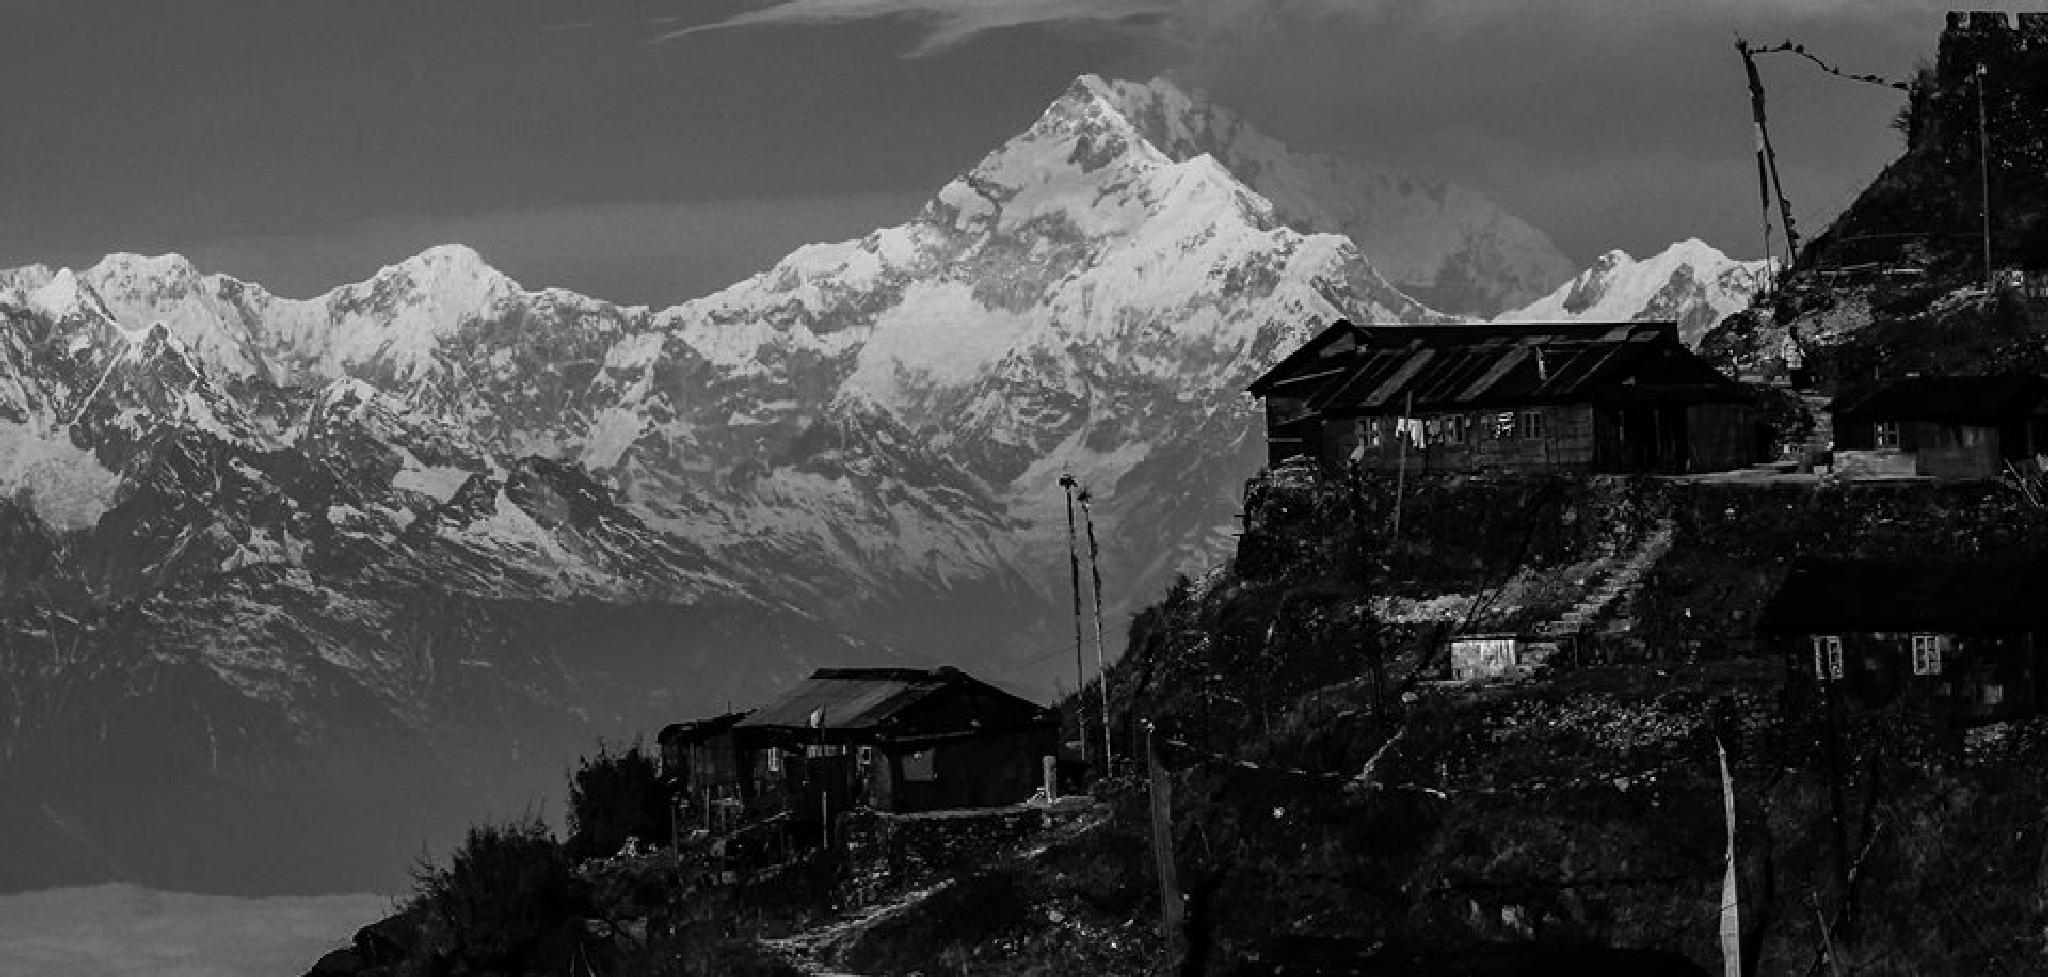 A Sleepy Village with Mt Kanchenjonga in the background by subhagatadey